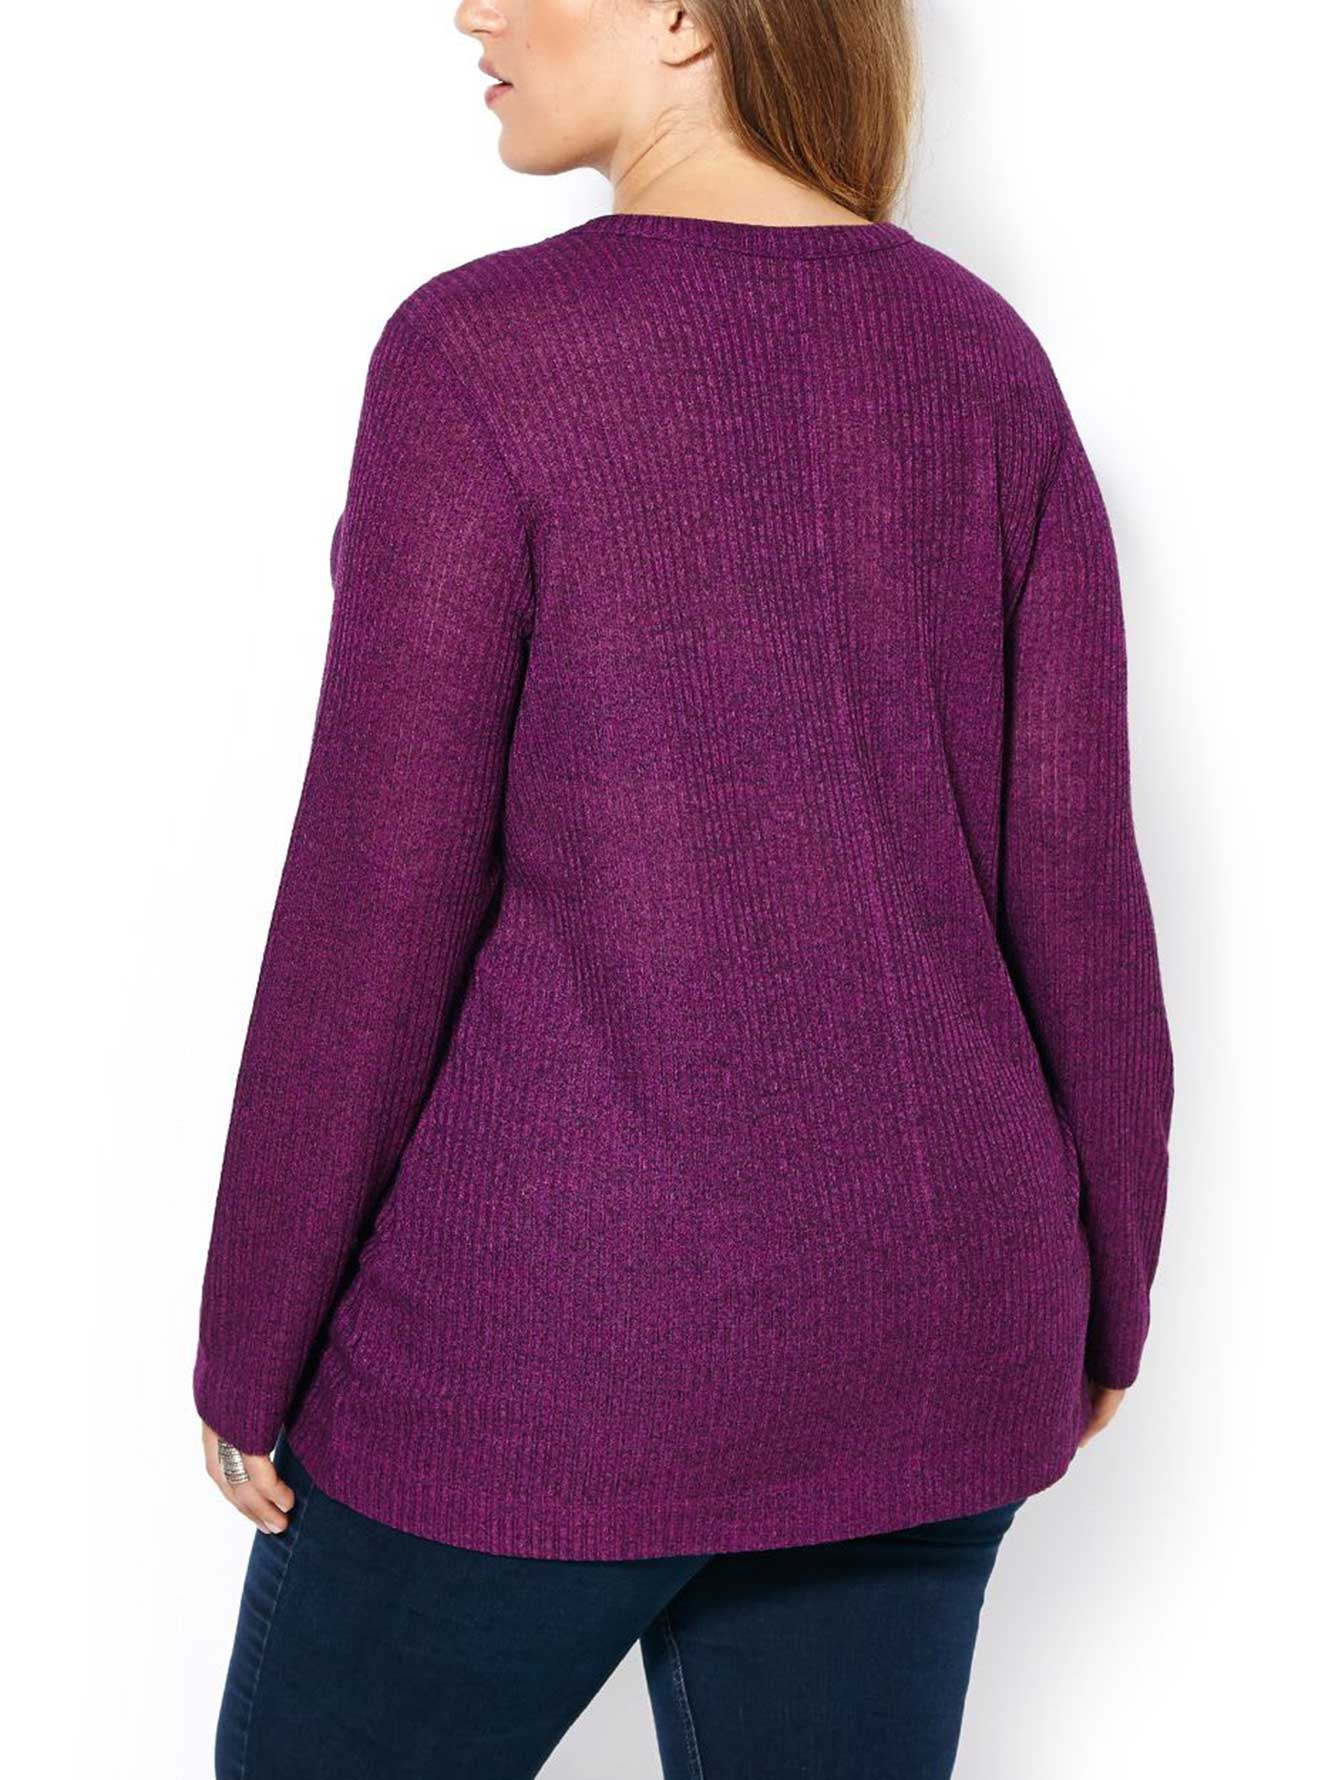 Shop cotton knit long sleeve shirt at Neiman Marcus, where you will find free shipping on the latest in fashion from top designers.